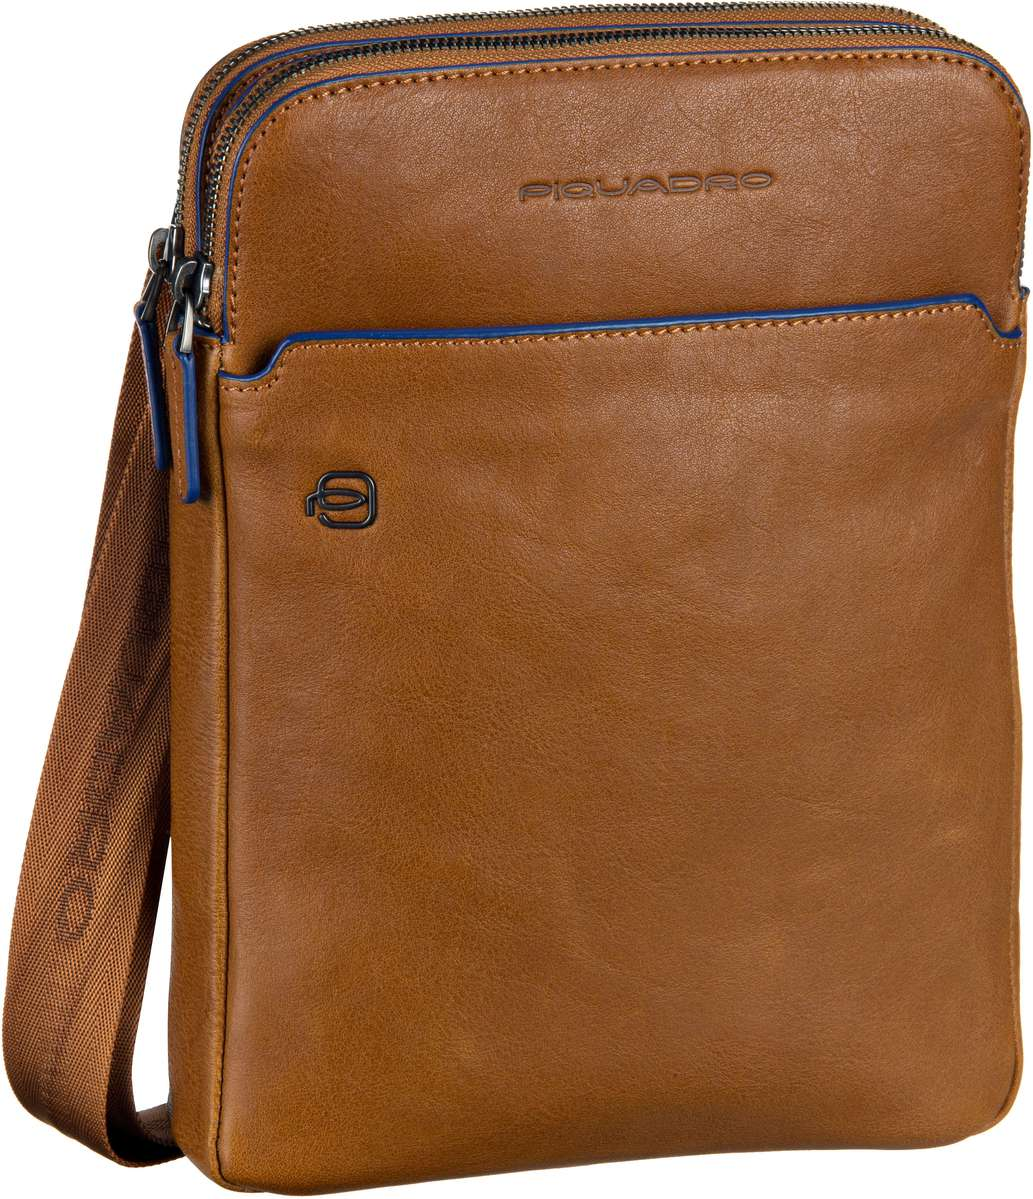 Piquadro Notebooktasche / Tablet B2S Umhängetasche 3978 Cuoio Tabacco